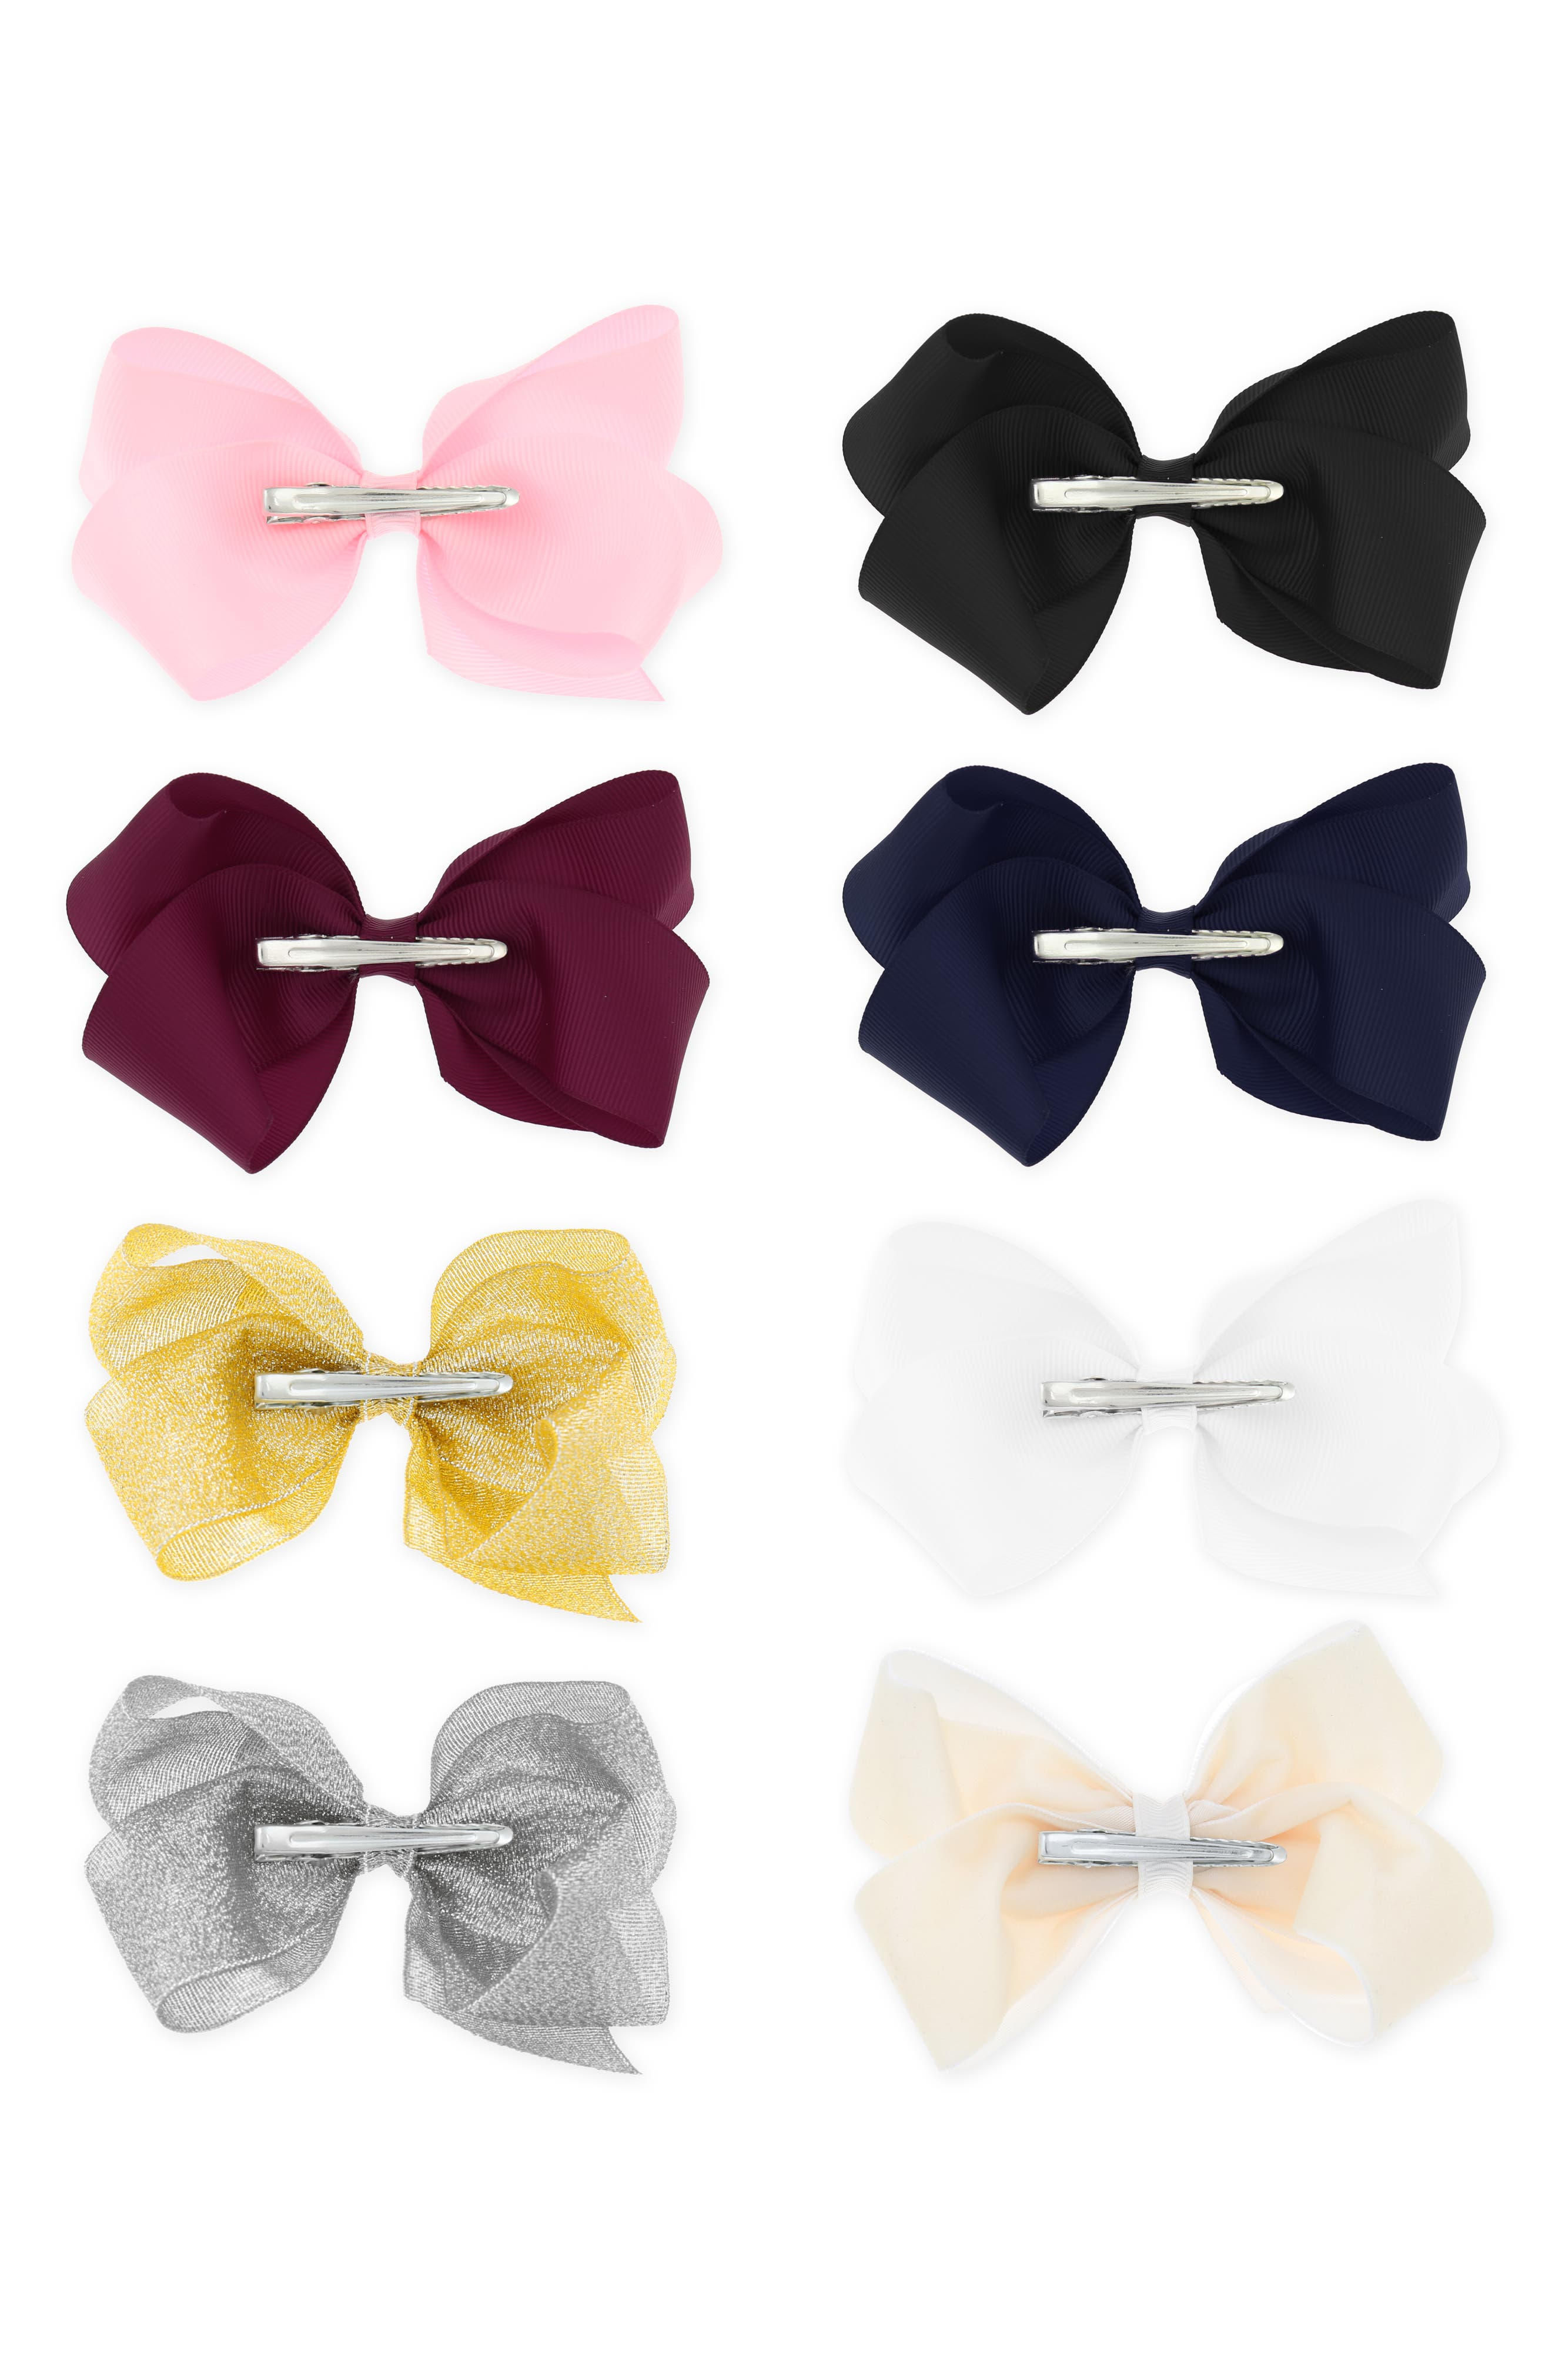 8-Pack Bow Hair Clip Set,                             Alternate thumbnail 2, color,                             650